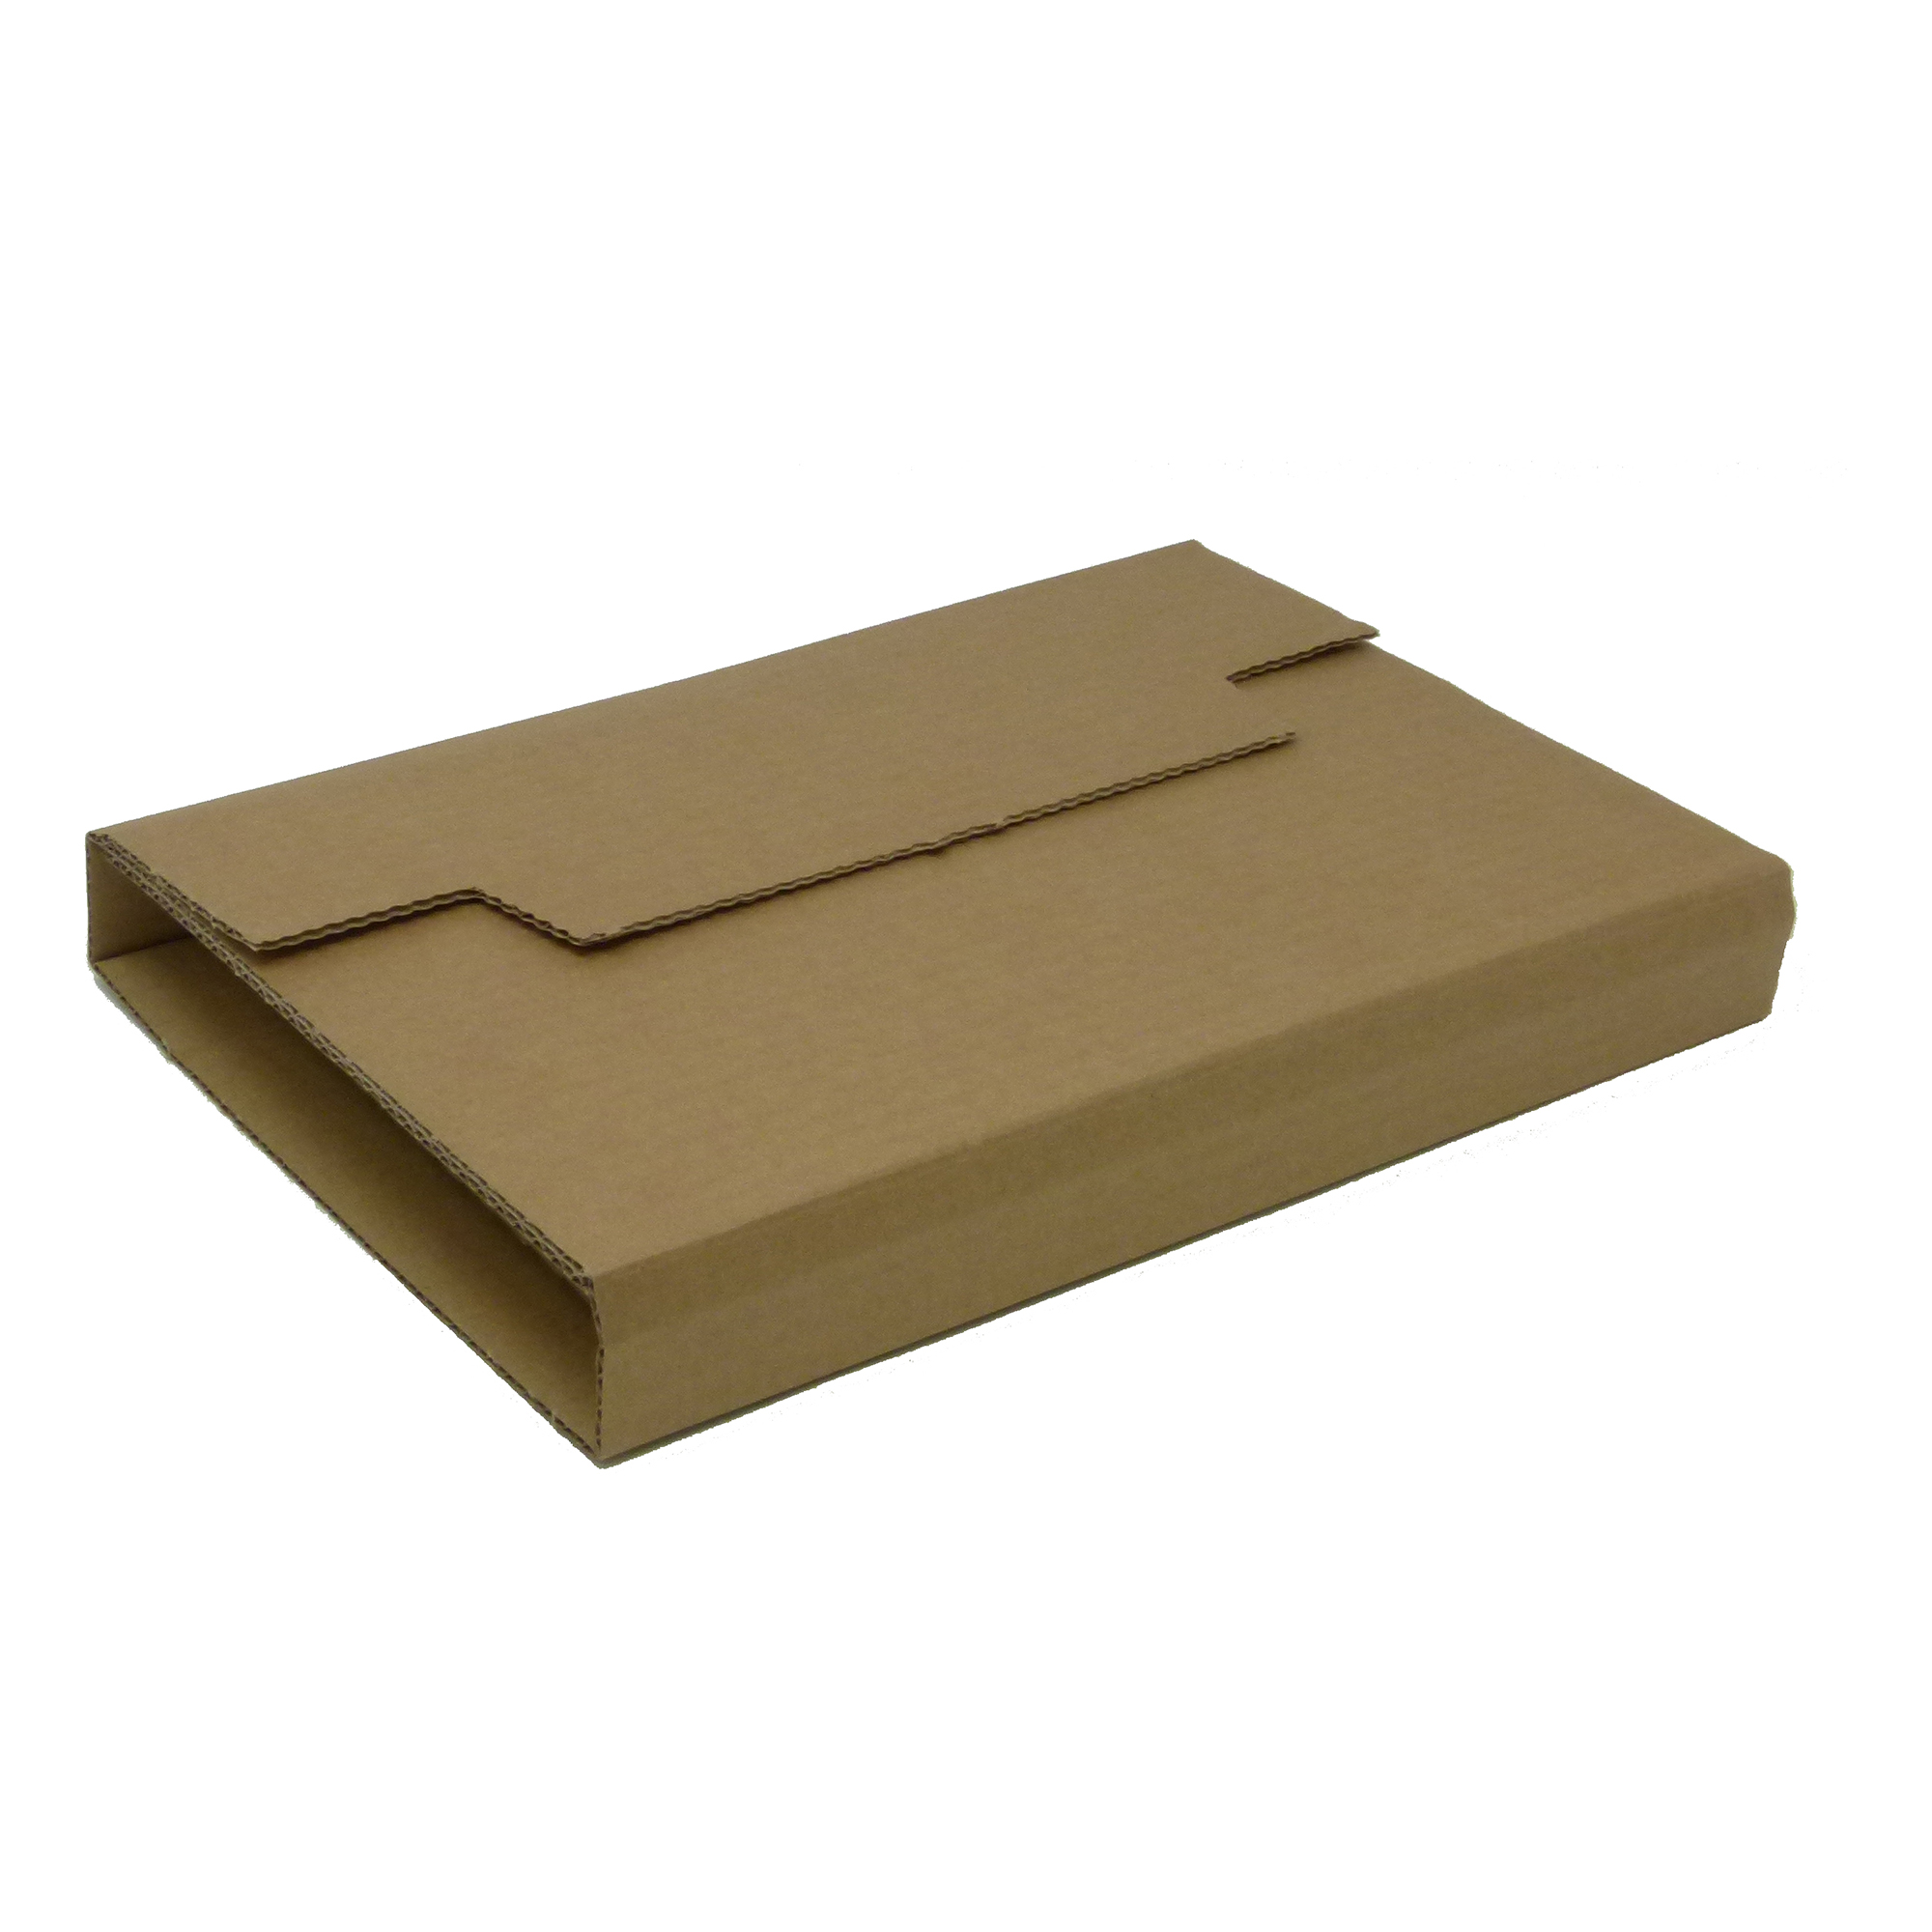 Mailing boxes Rigid Corrugated Postal Wrapper Small 250x180x50mm Manilla Ref RBL10535 Pack 25